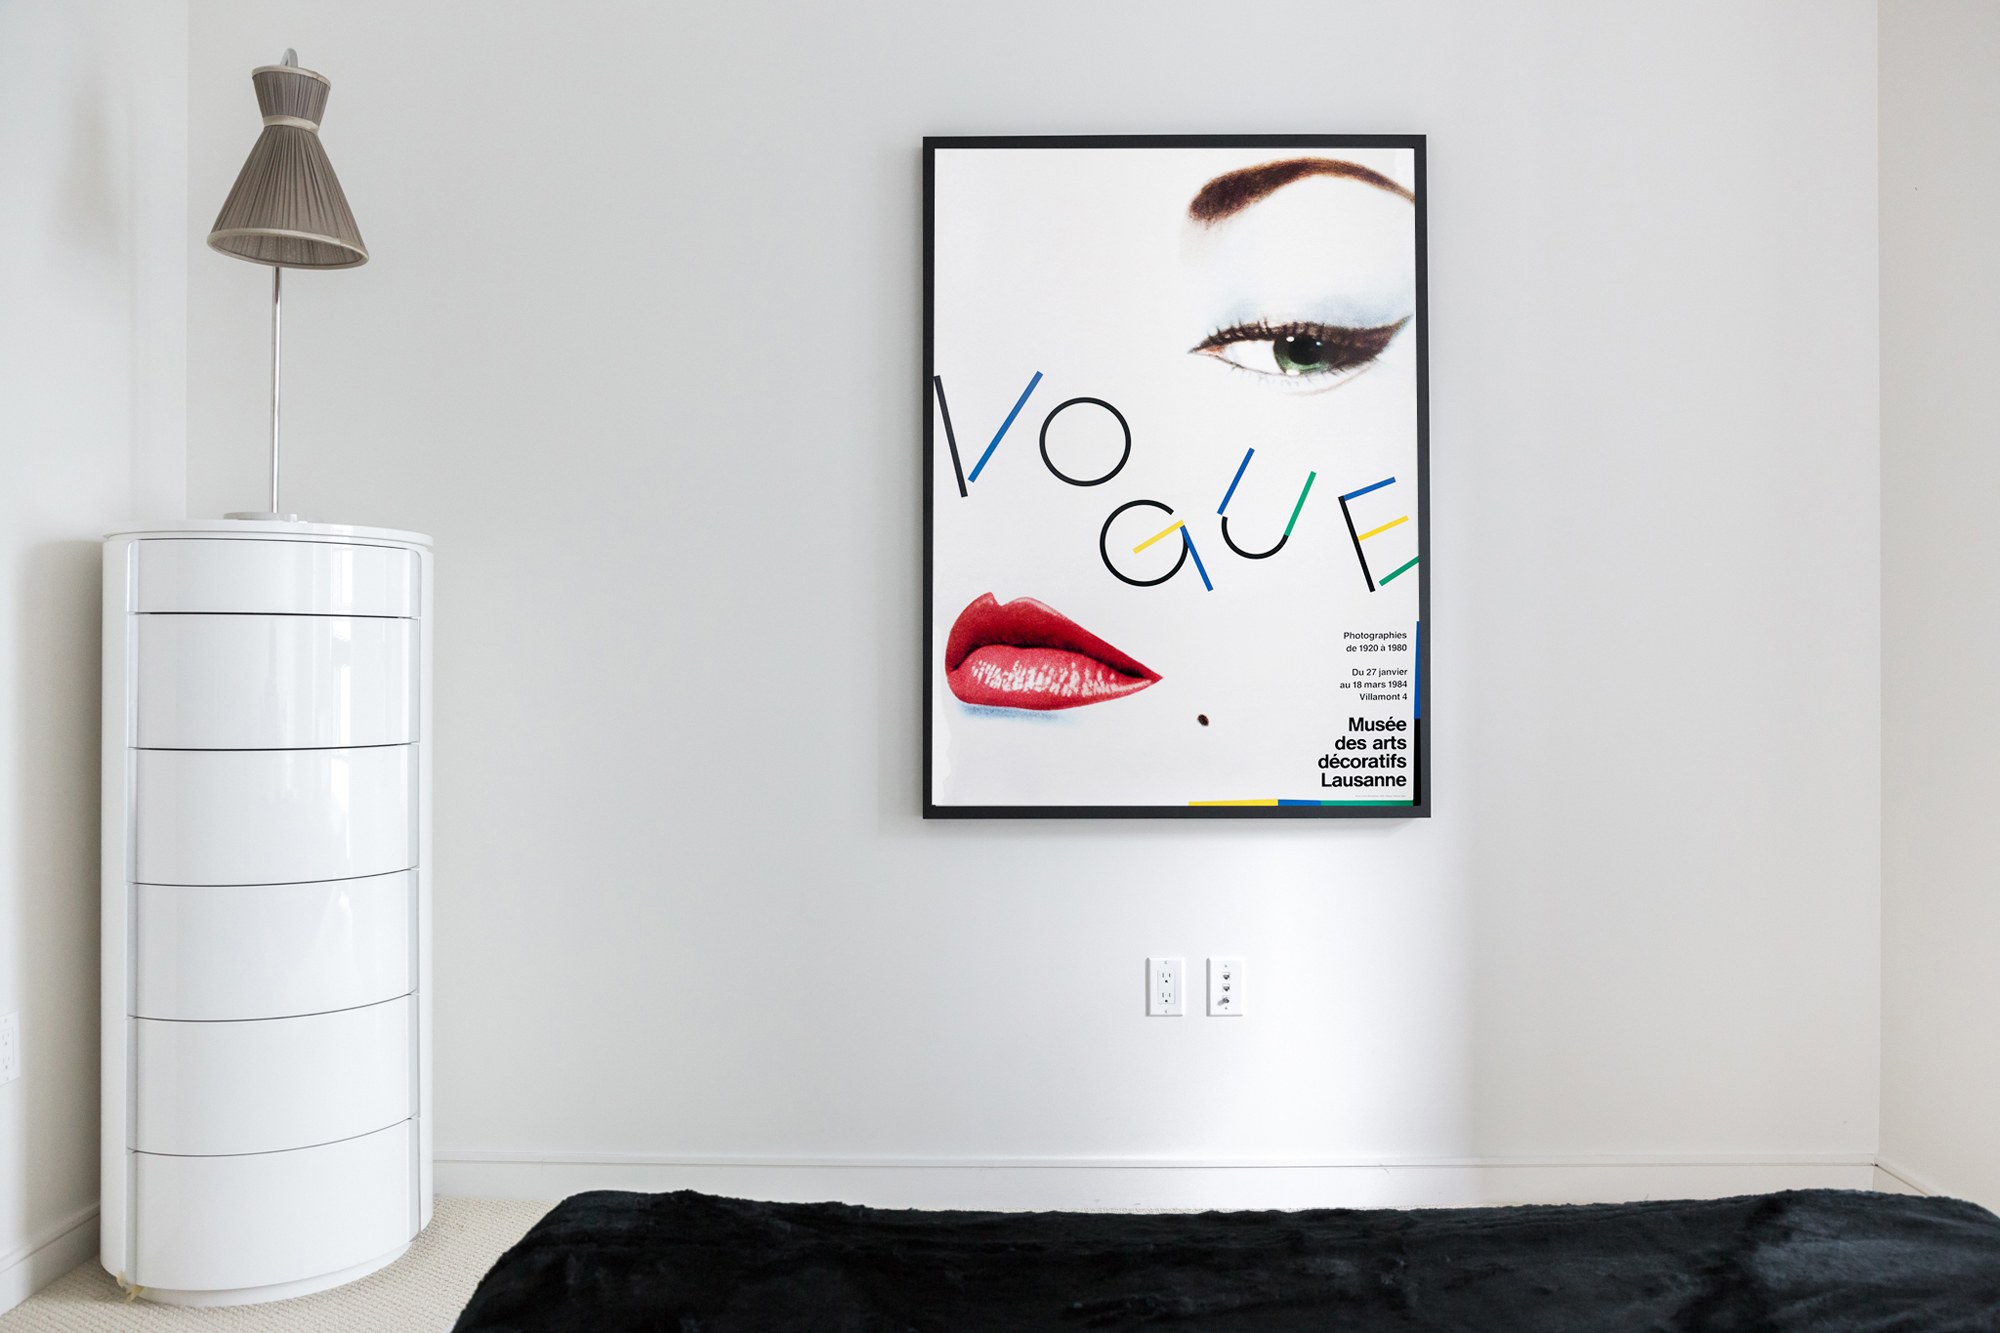 Typographic Vogue poster in minimalist room; red, white, blue, black